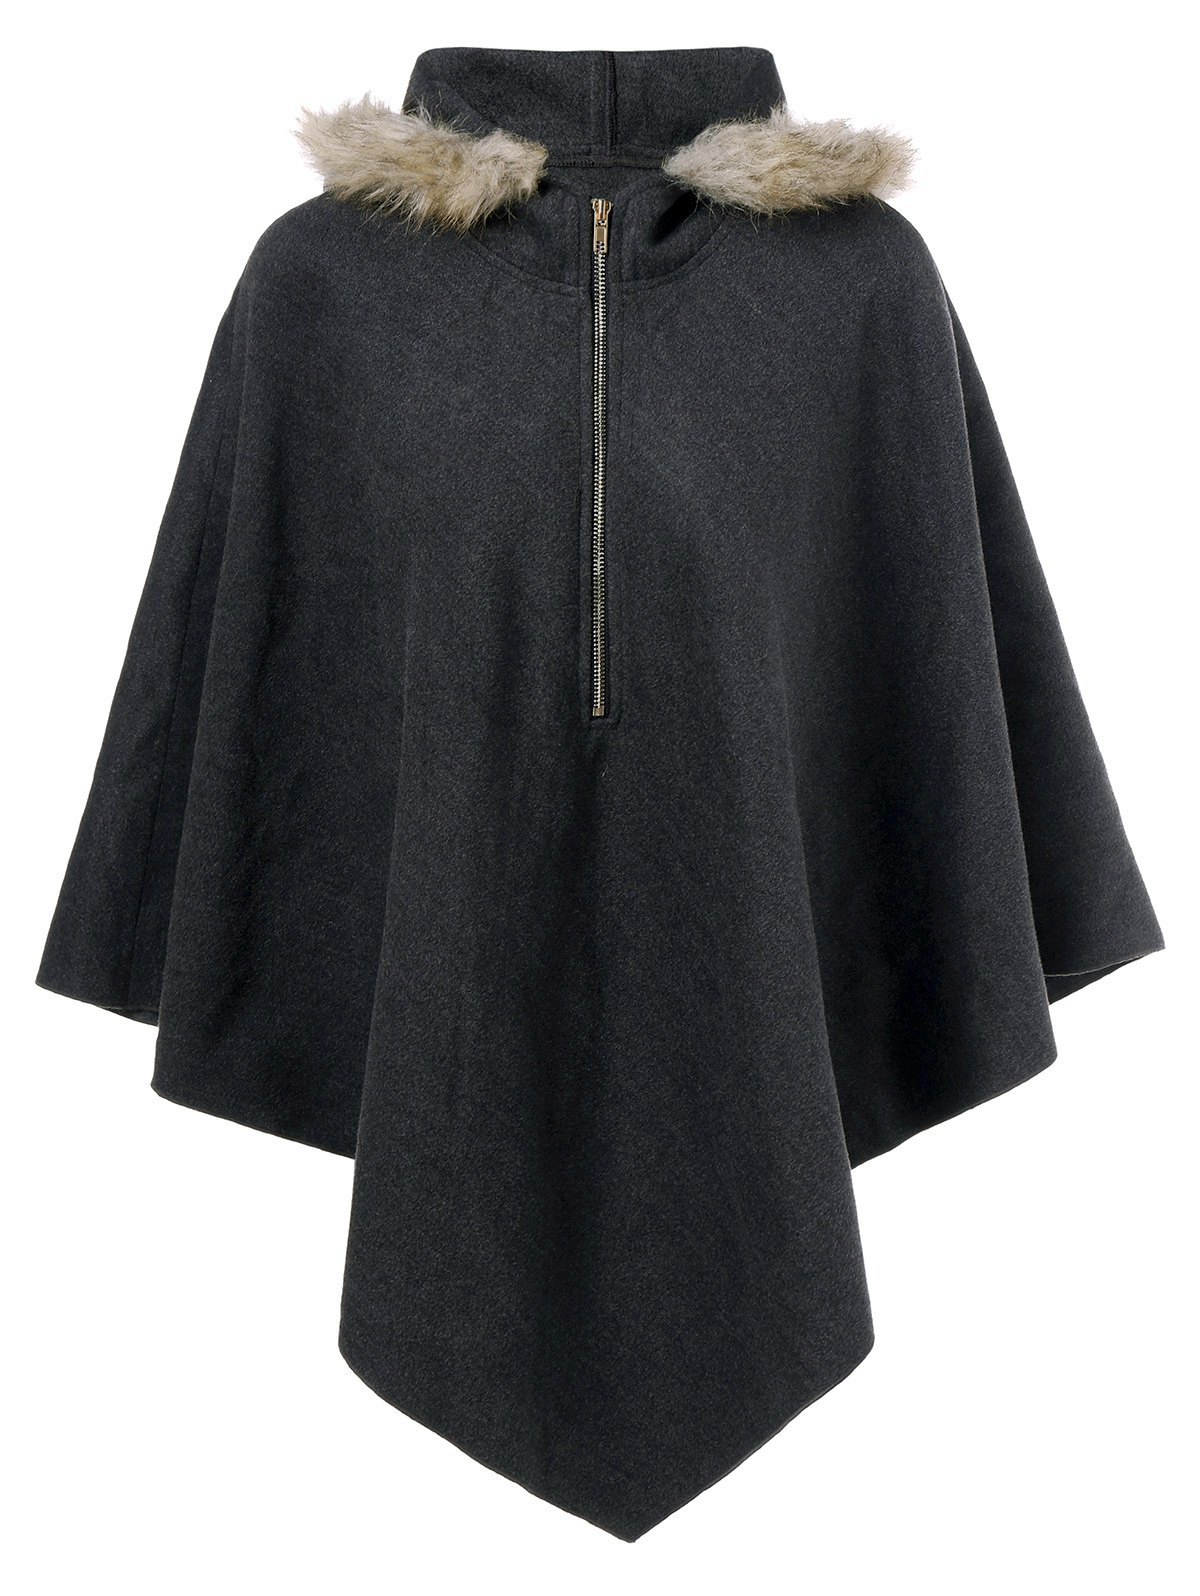 Hooded Cape CoatWOMEN<br><br>Size: L; Color: BLACK GREY; Clothes Type: Others; Material: Polyester; Type: Asymmetric Length; Shirt Length: Regular; Sleeve Length: Full; Collar: Hooded; Pattern Type: Solid; Embellishment: Zippers; Style: Fashion; Season: Fall,Spring; Weight: 0.420kg; Package Contents: 1 x Coat;